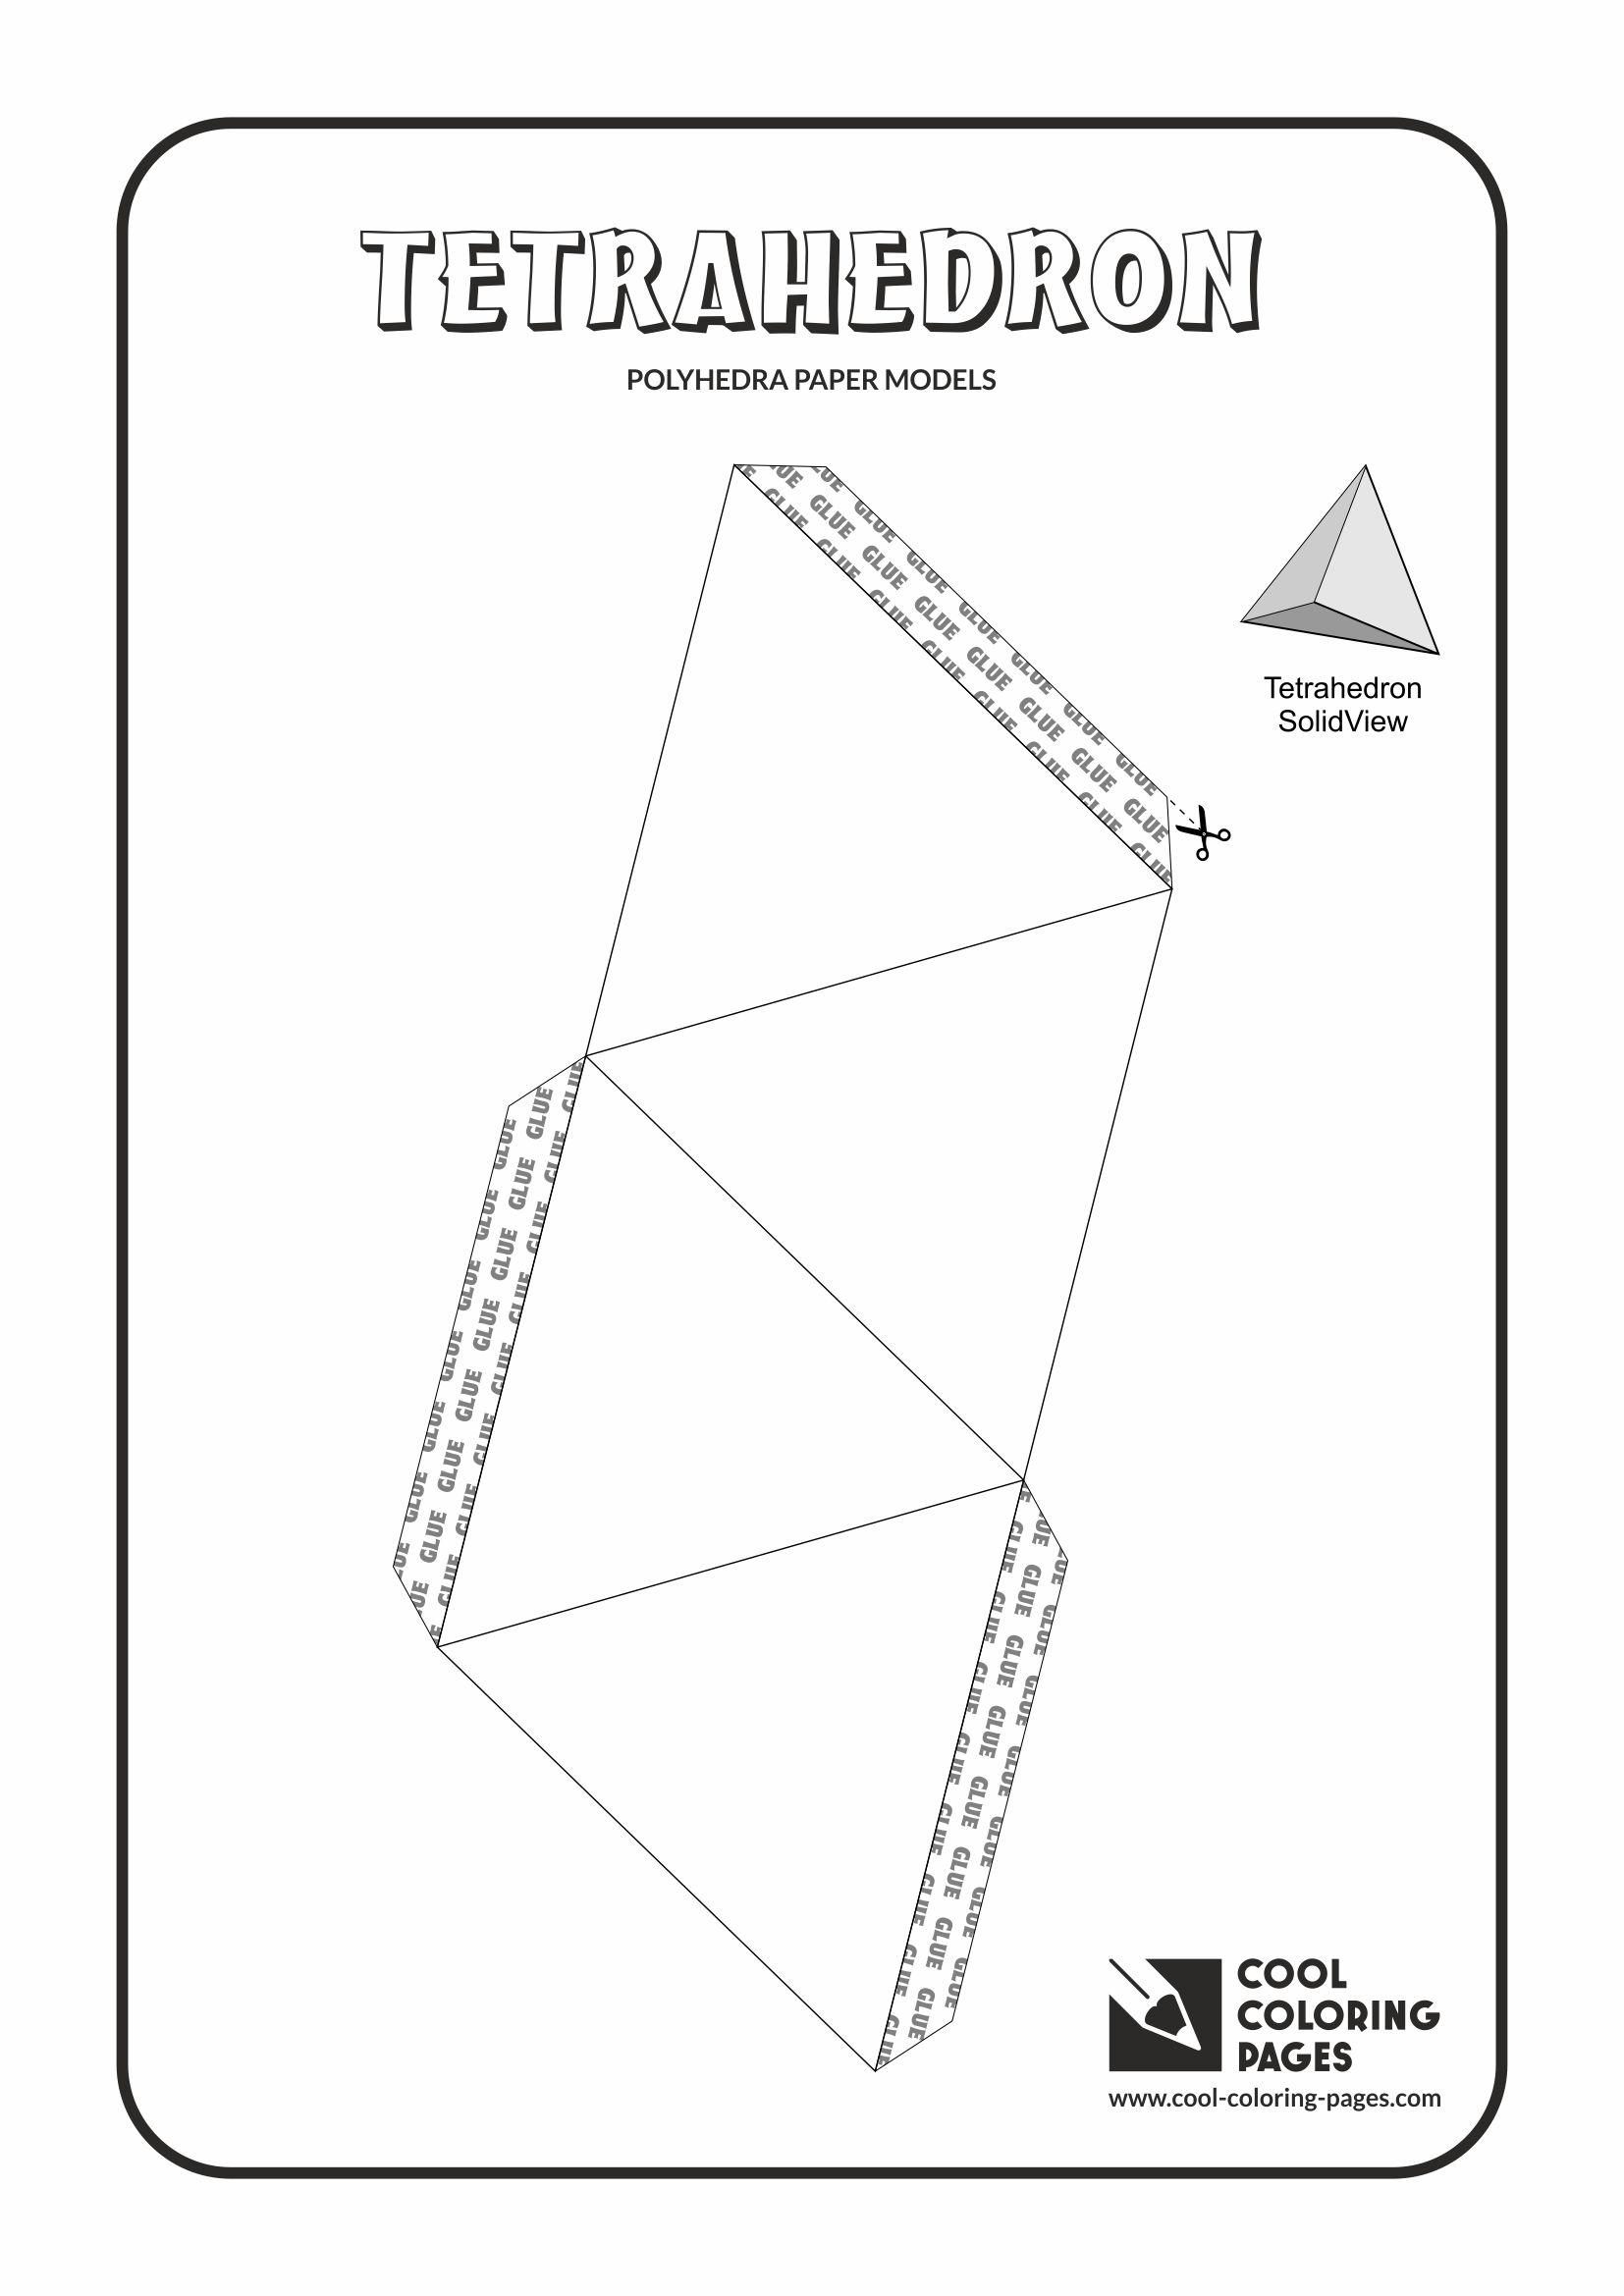 Cool Coloring Pages - Paper models of polyhedra / Paper solids models / Tetrahedron